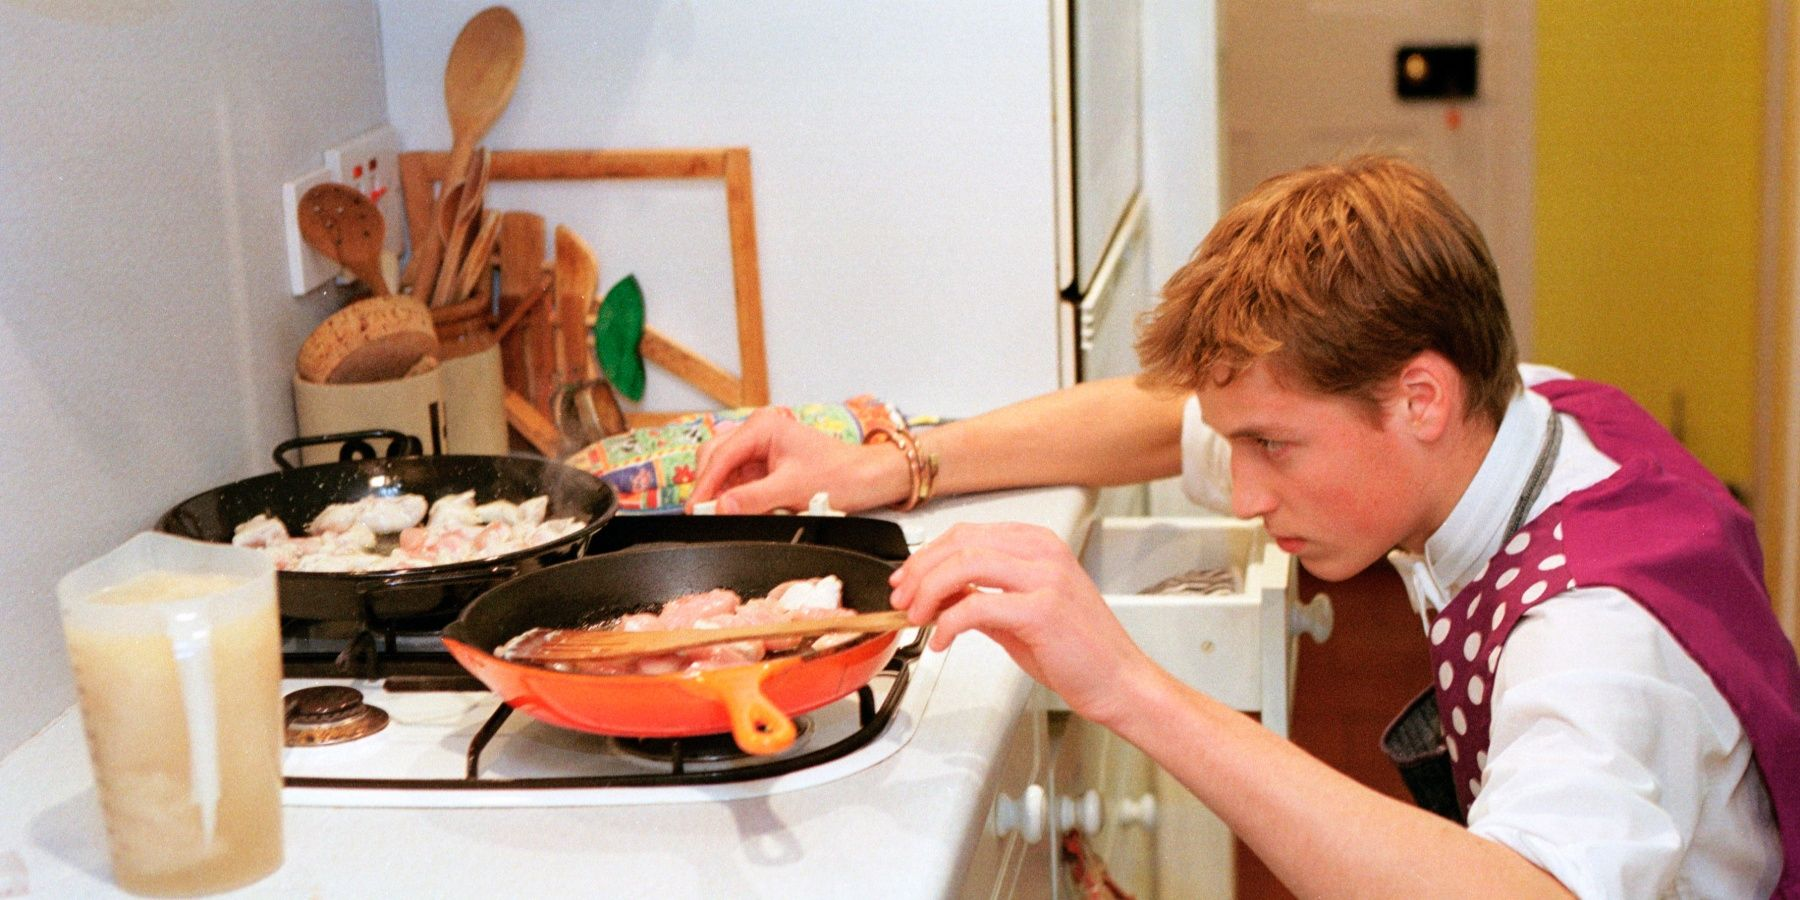 WINDSOR, UNITED KINGDOM - JUNE 17:  Prince William Cooking Chicken Paella During His Boarding School Days At Eton College  (Photo by Tim Graham Picture Library/Getty Images)